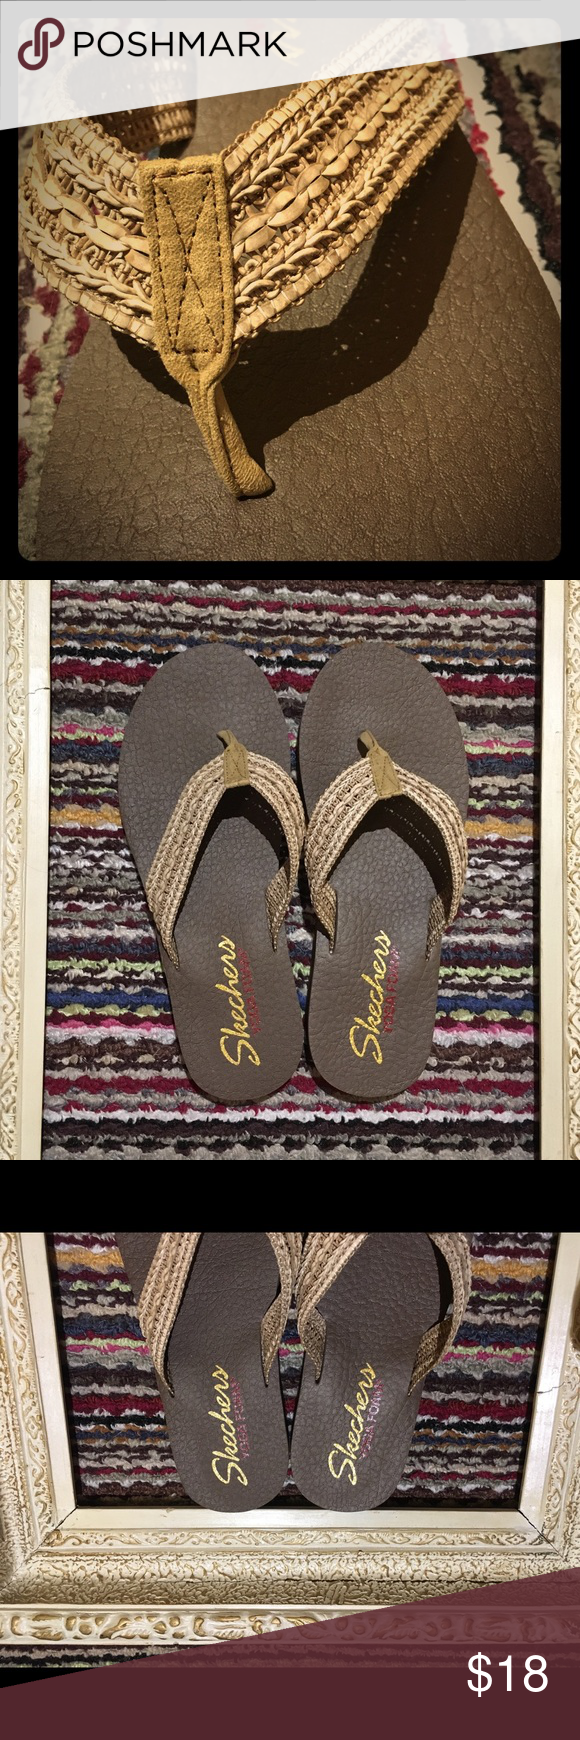 dbf986281655 NWOT Skechers Meditation Zen Summer Sandal Achieve a state of perfect  tranquility in super cute style